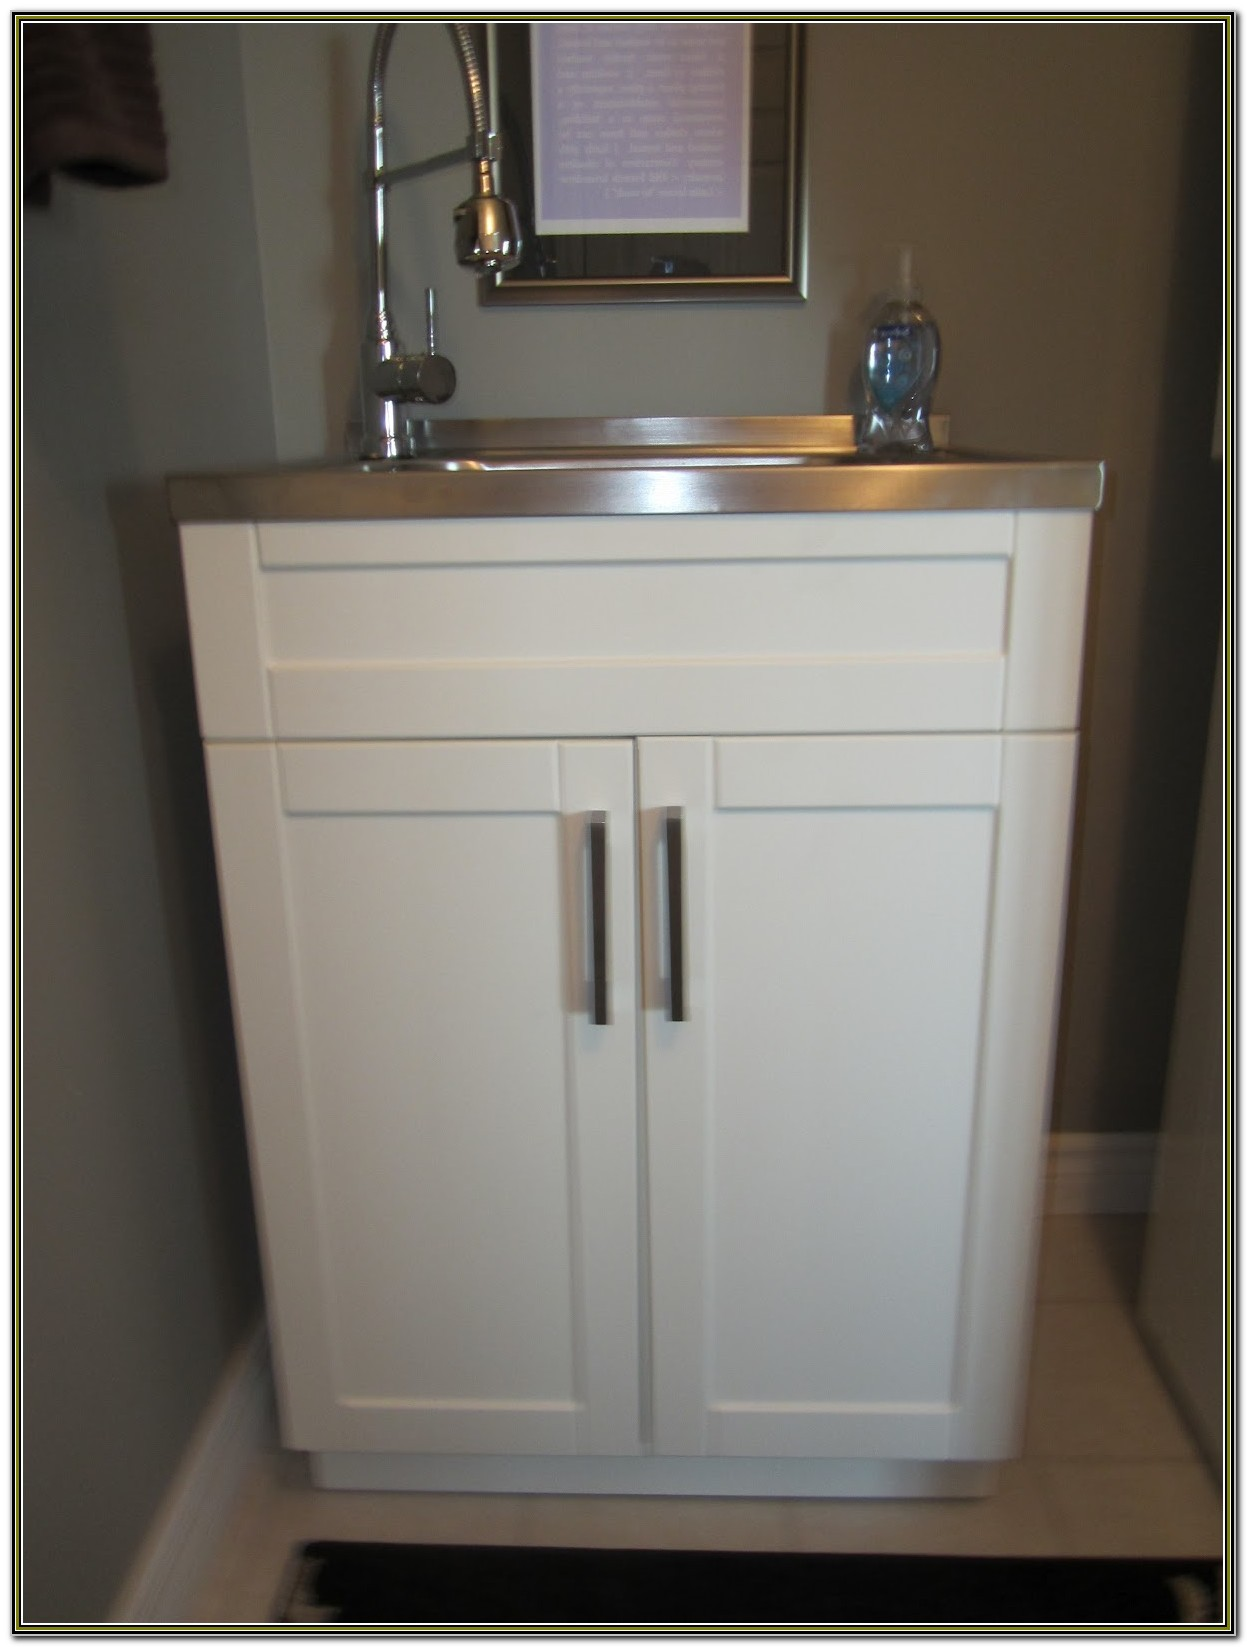 Home Depot Laundry Sink Cabinet